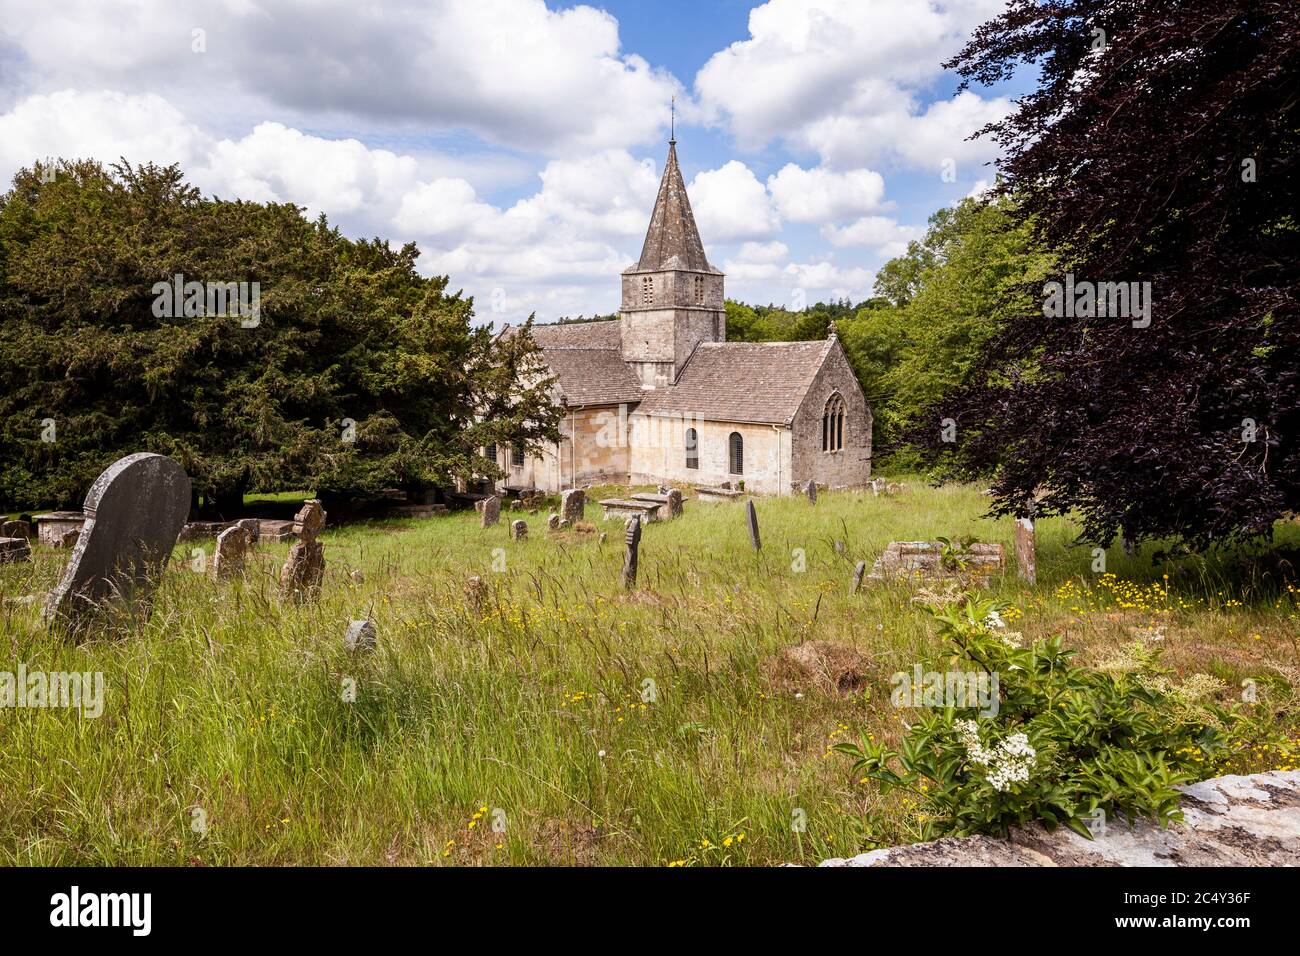 St Kenelms church in the Cotswold village of Sapperton, Gloucestershire UK Stock Photo